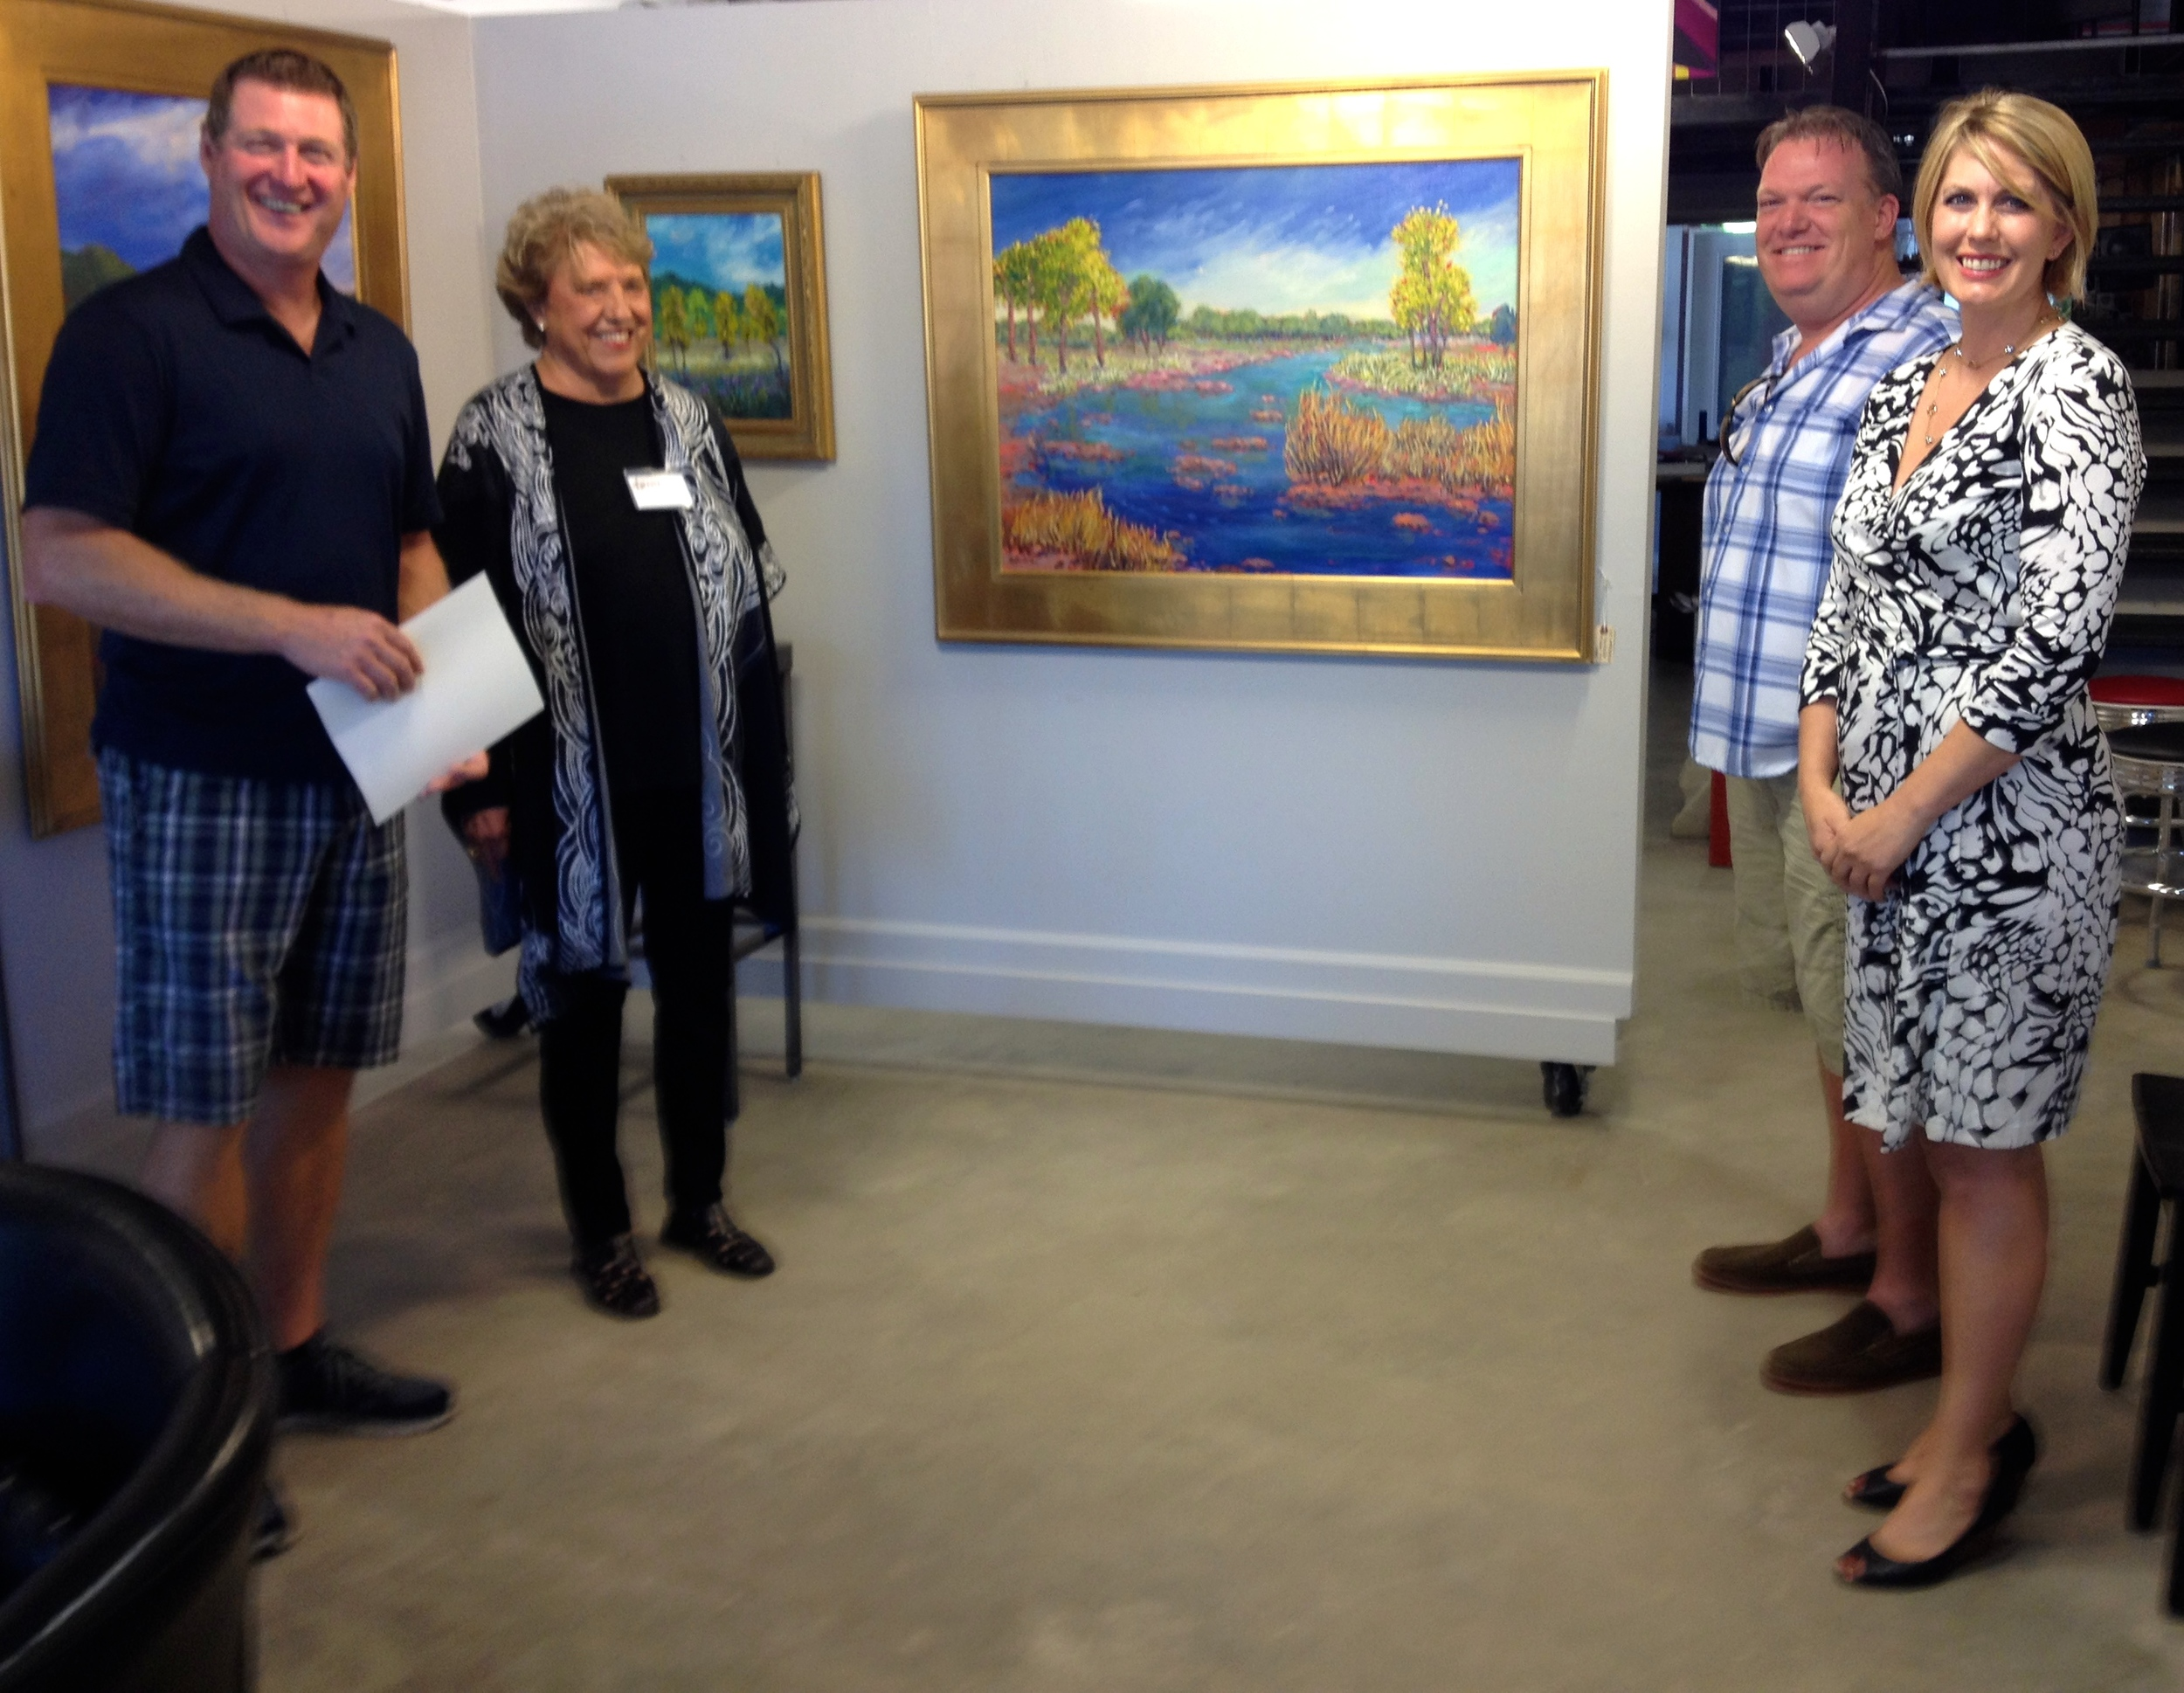 Russ Whitlock, Mary Bechtol, Matt Wigglesworth and Staci Almagor with the painting,  Quiet on the Pedernales , which is being auctioned for the benefit of the Friends of LBJ Nat'l Park. Bids are open until 9pm October 23rd. Check on the current top bid at www.TasteWineArt.com. Email your bids to susan@TasteWineArt.com